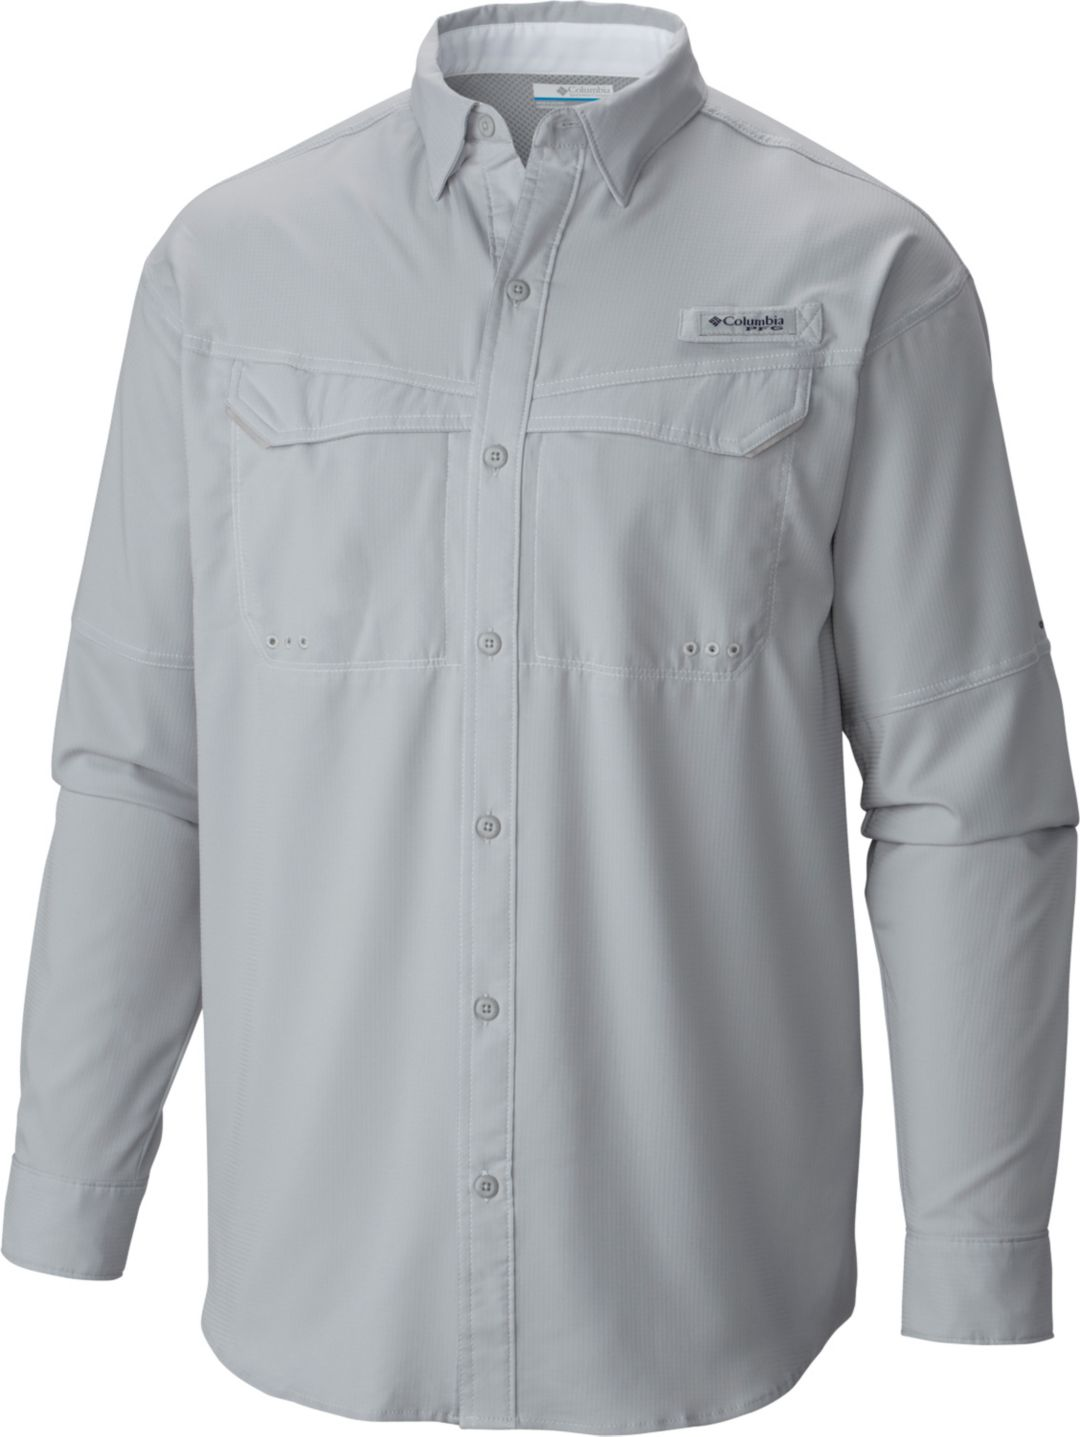 ee16a9f7 Columbia Men's PFG Low Drag Offshore Long Sleeve Shirt | DICK'S ...